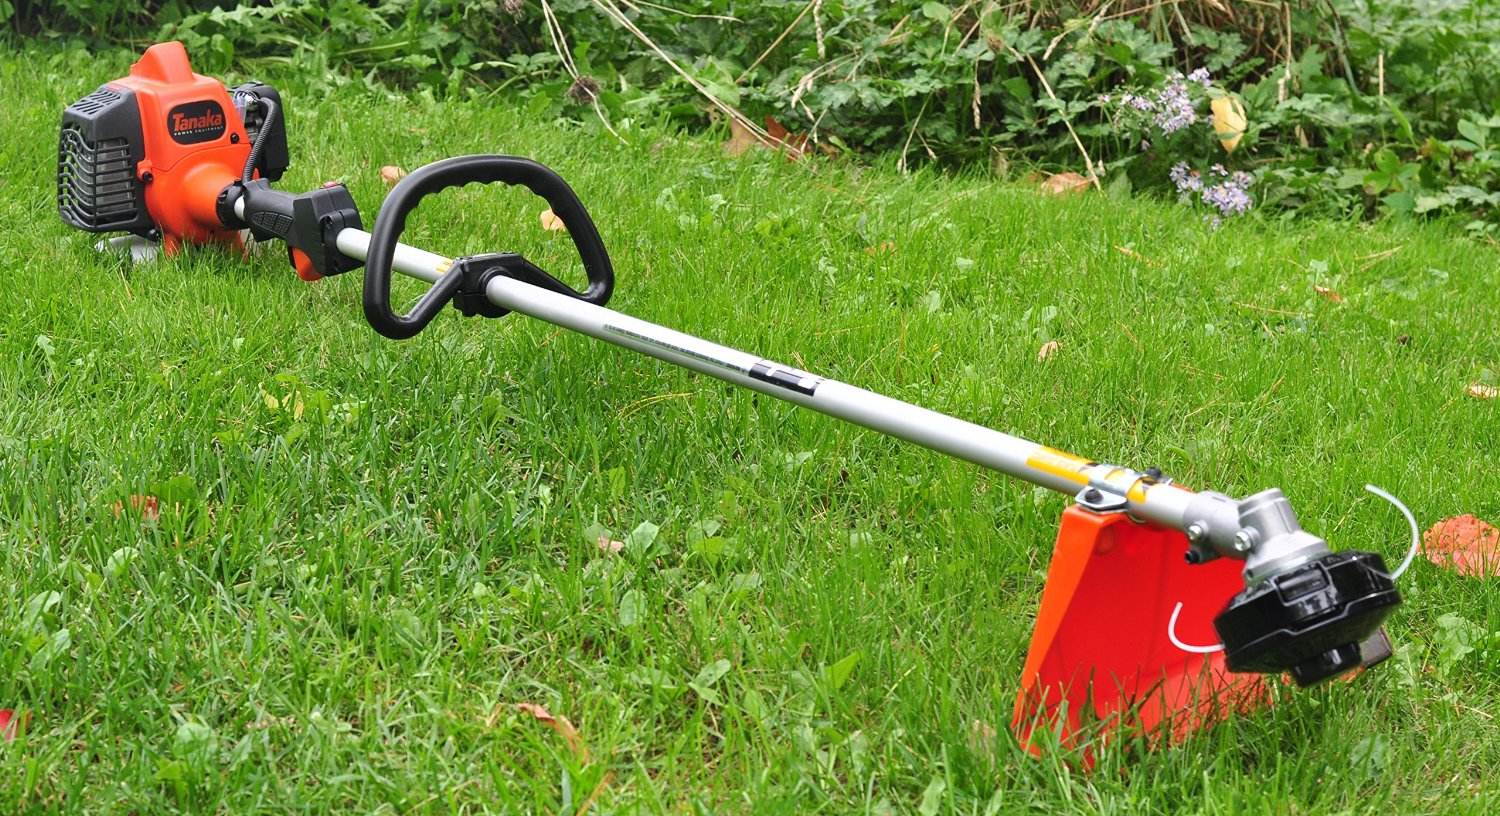 Tips For The Preventative Care Of Your Weed Eater - MVS Ottawa